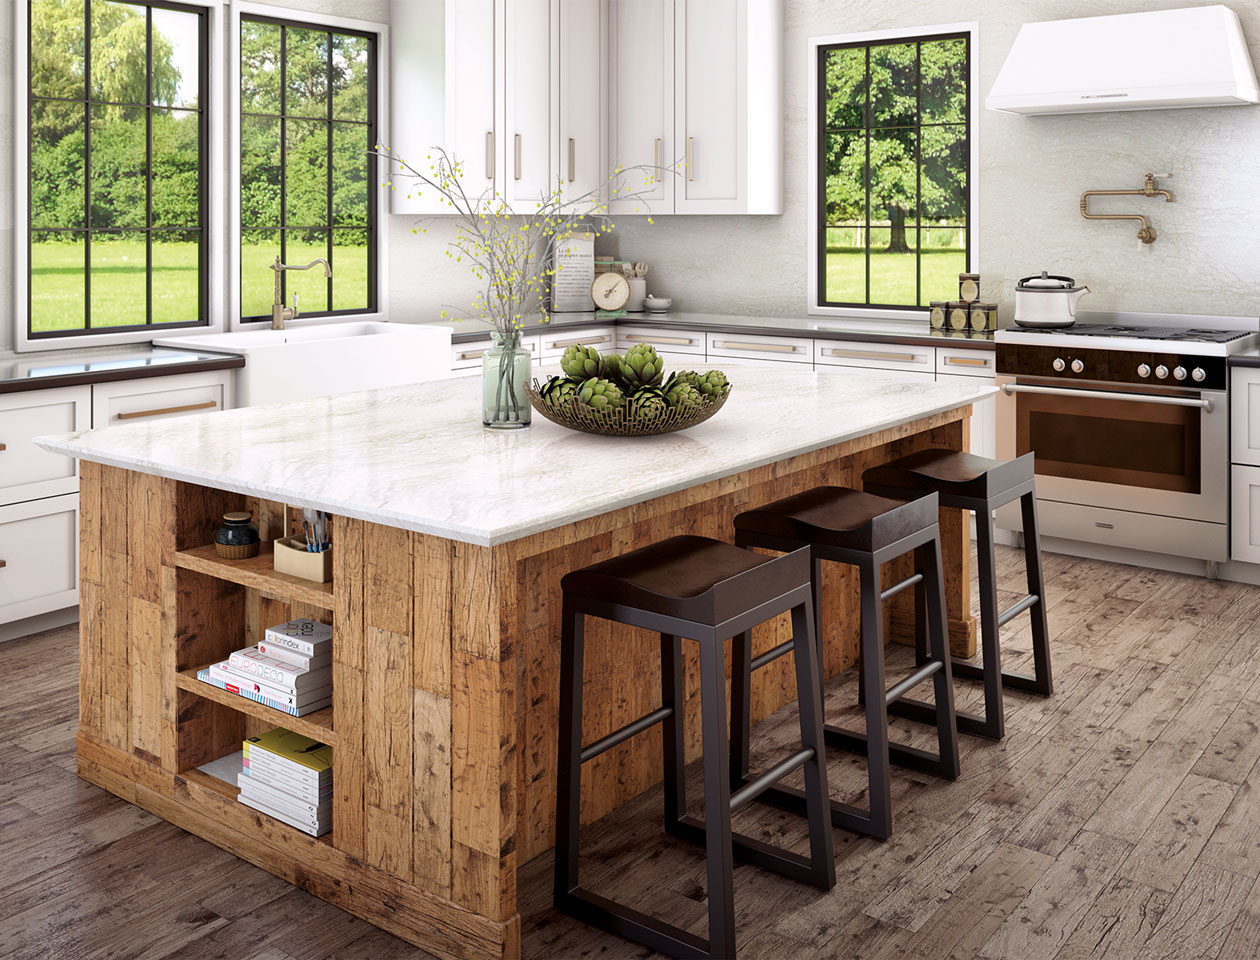 Low Maintenance Countertops Which Countertop Is Easiest To Maintain